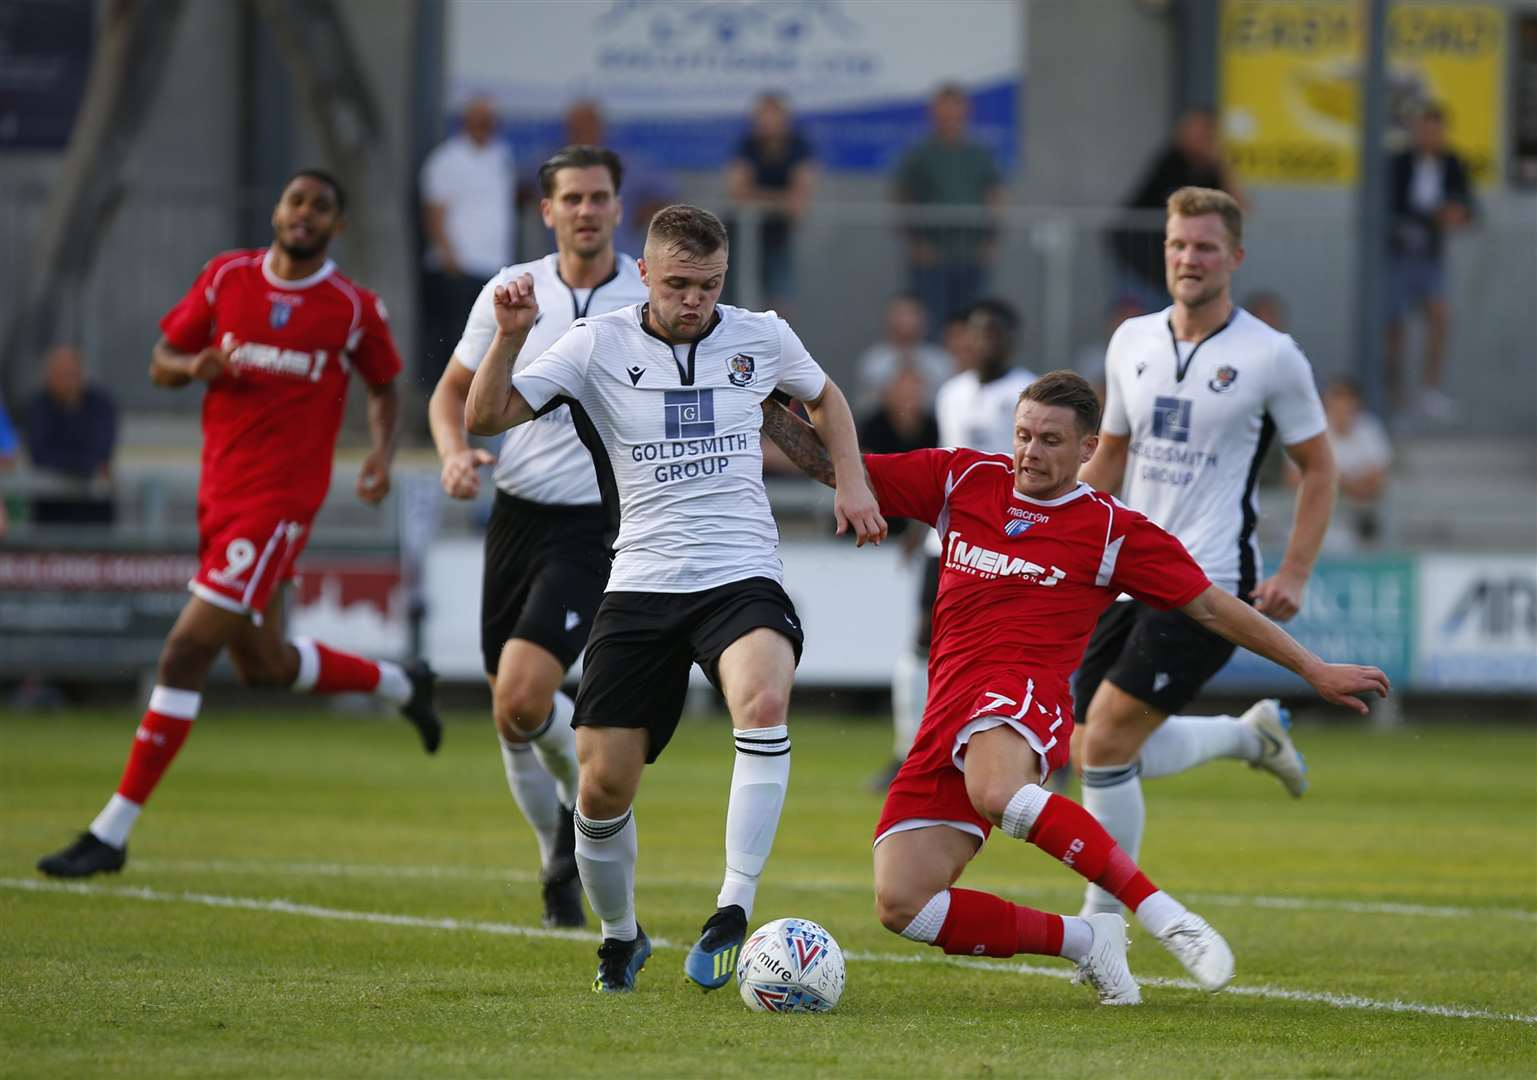 Action from Dartford's pre-season friendly against Gillingham Picture: Andy Jones